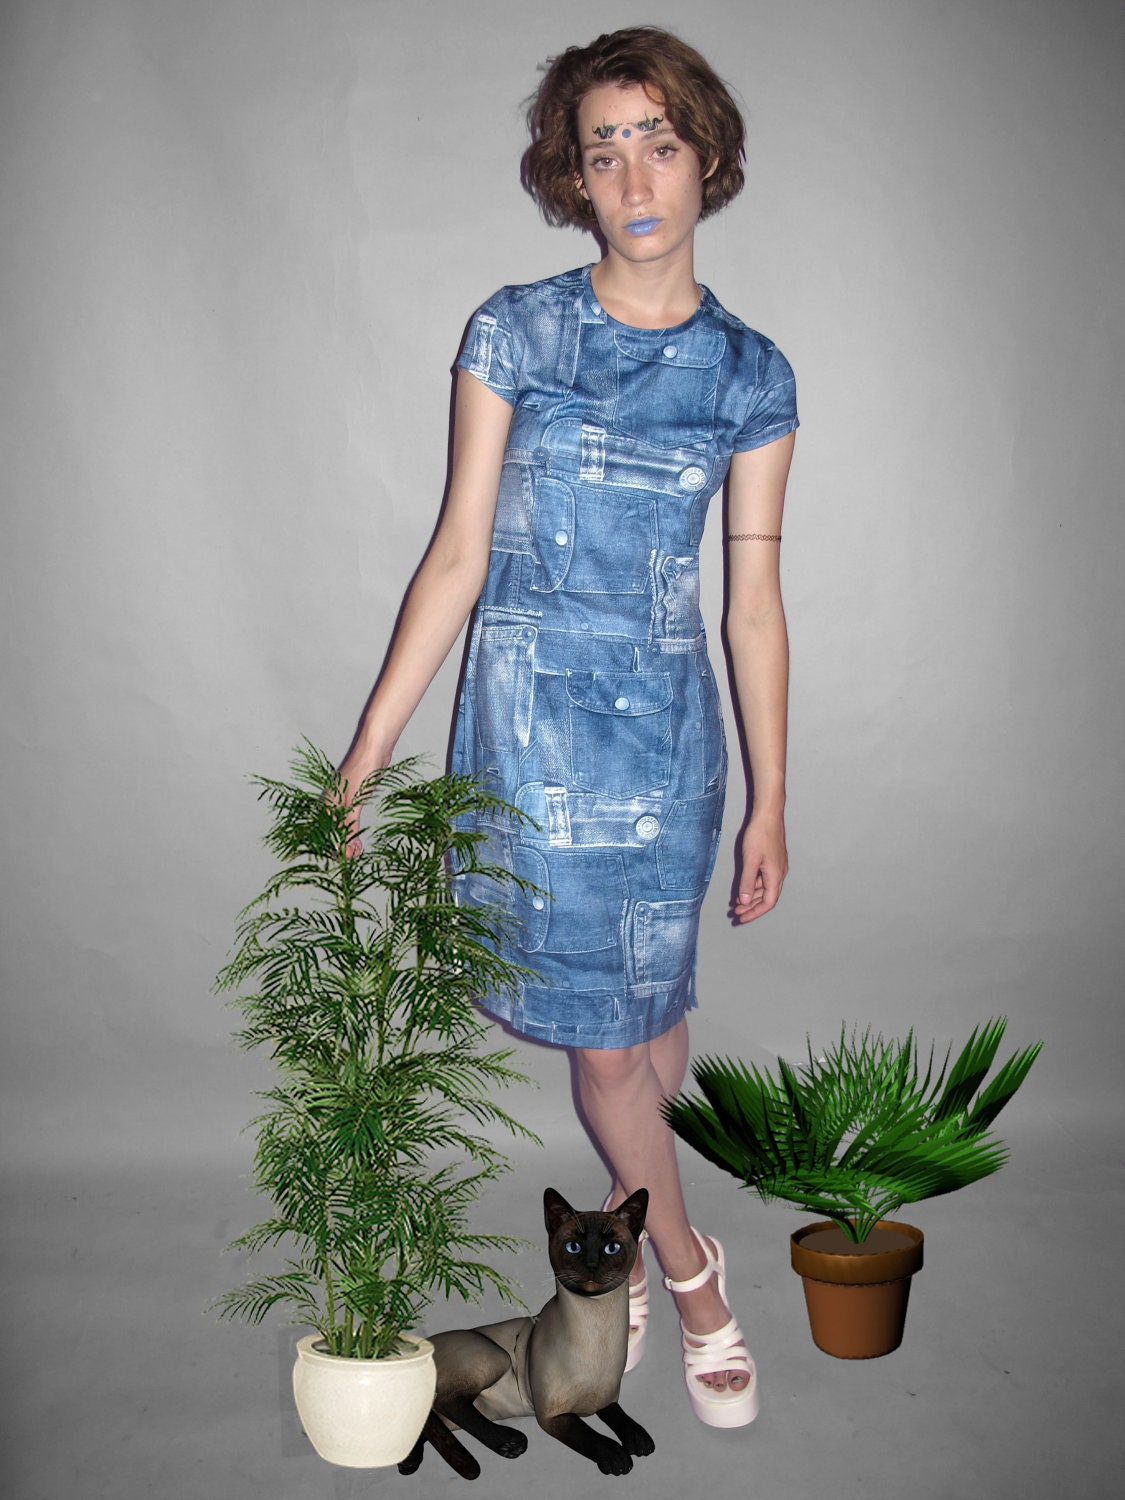 FAUX denim FAKE jean pockets DRESS M